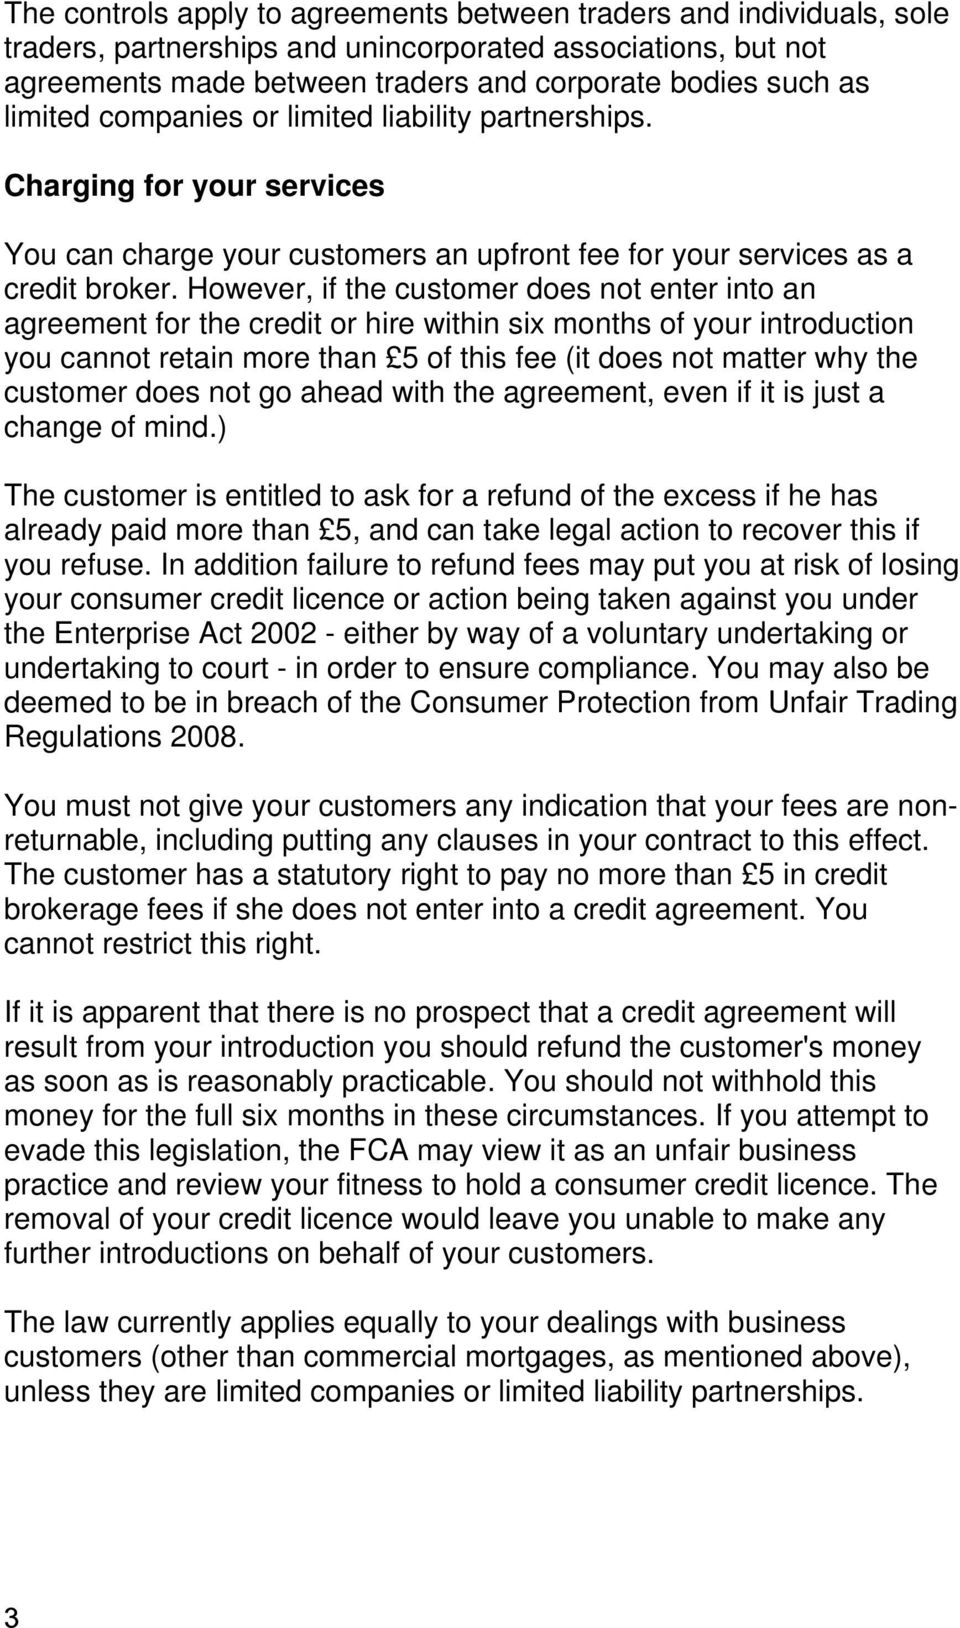 However, if the customer does not enter into an agreement for the credit or hire within six months of your introduction you cannot retain more than 5 of this fee (it does not matter why the customer